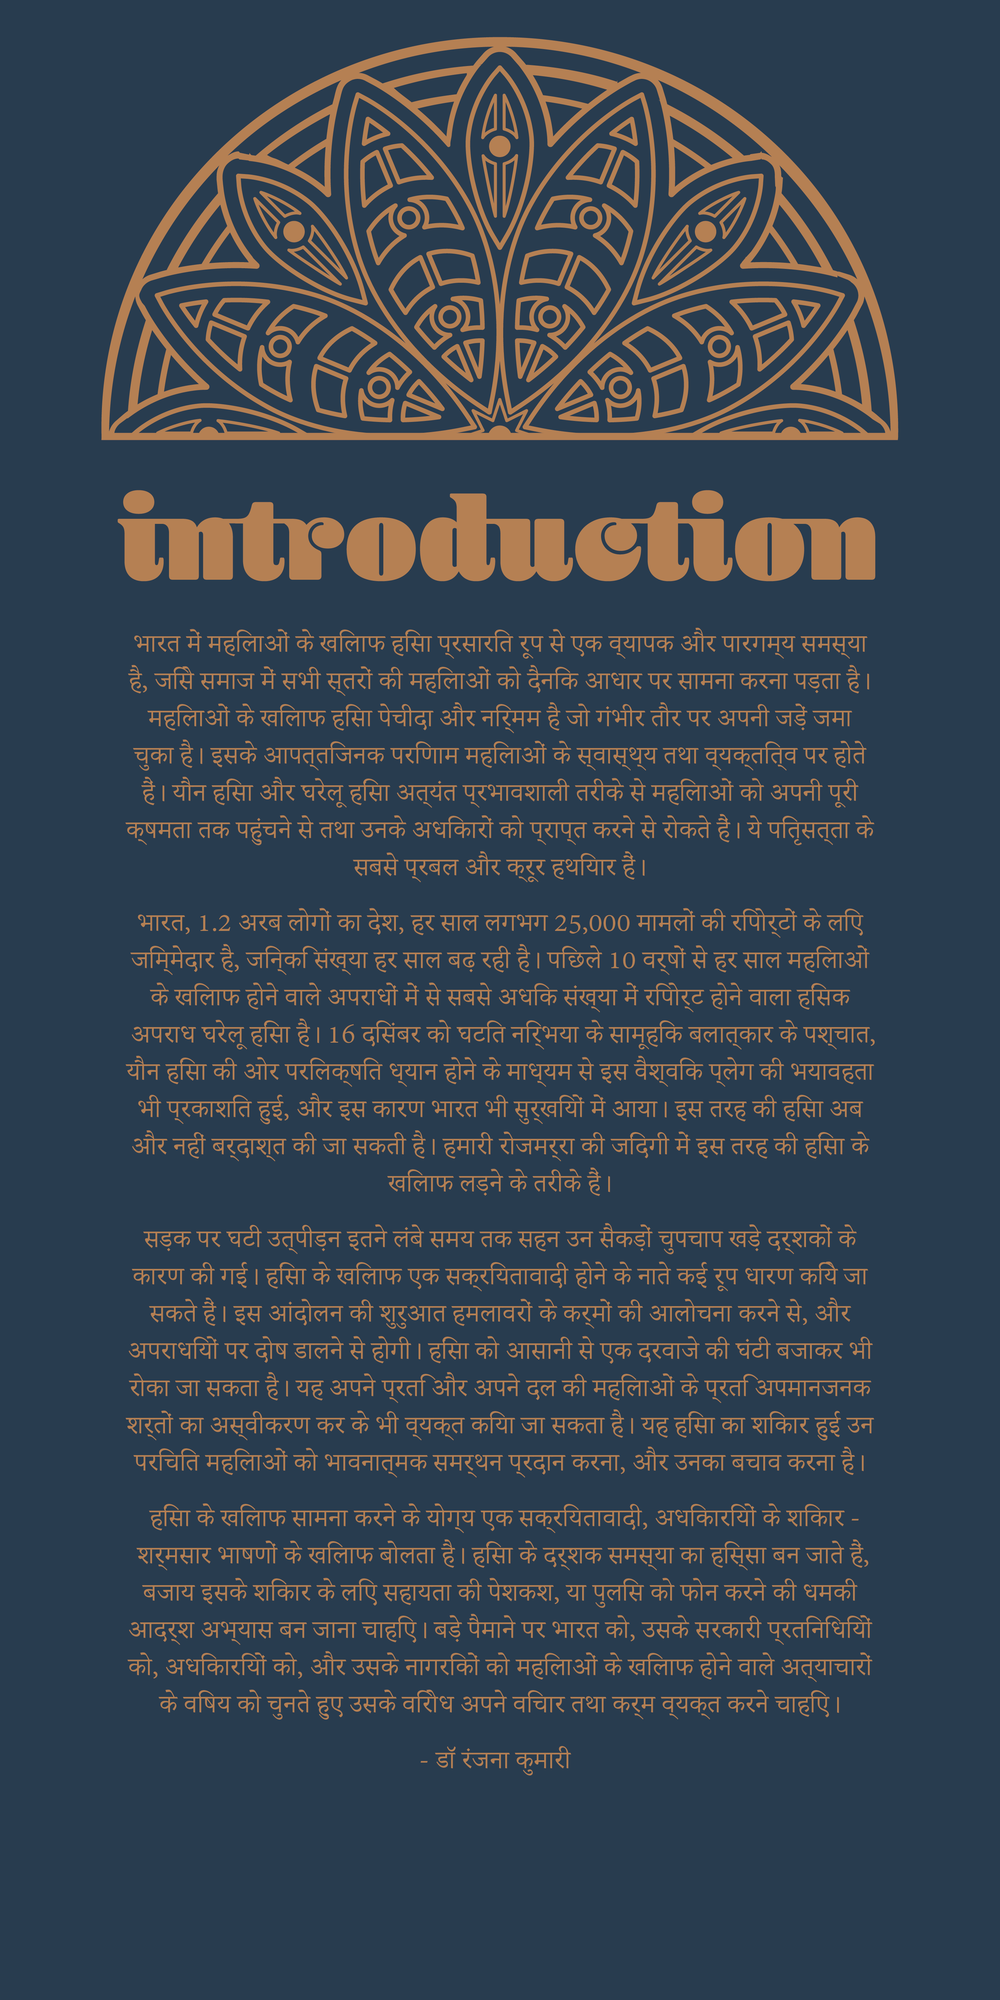 A2_UE_Intro-EngHind_EXHIBITION INTRO HINDI.png